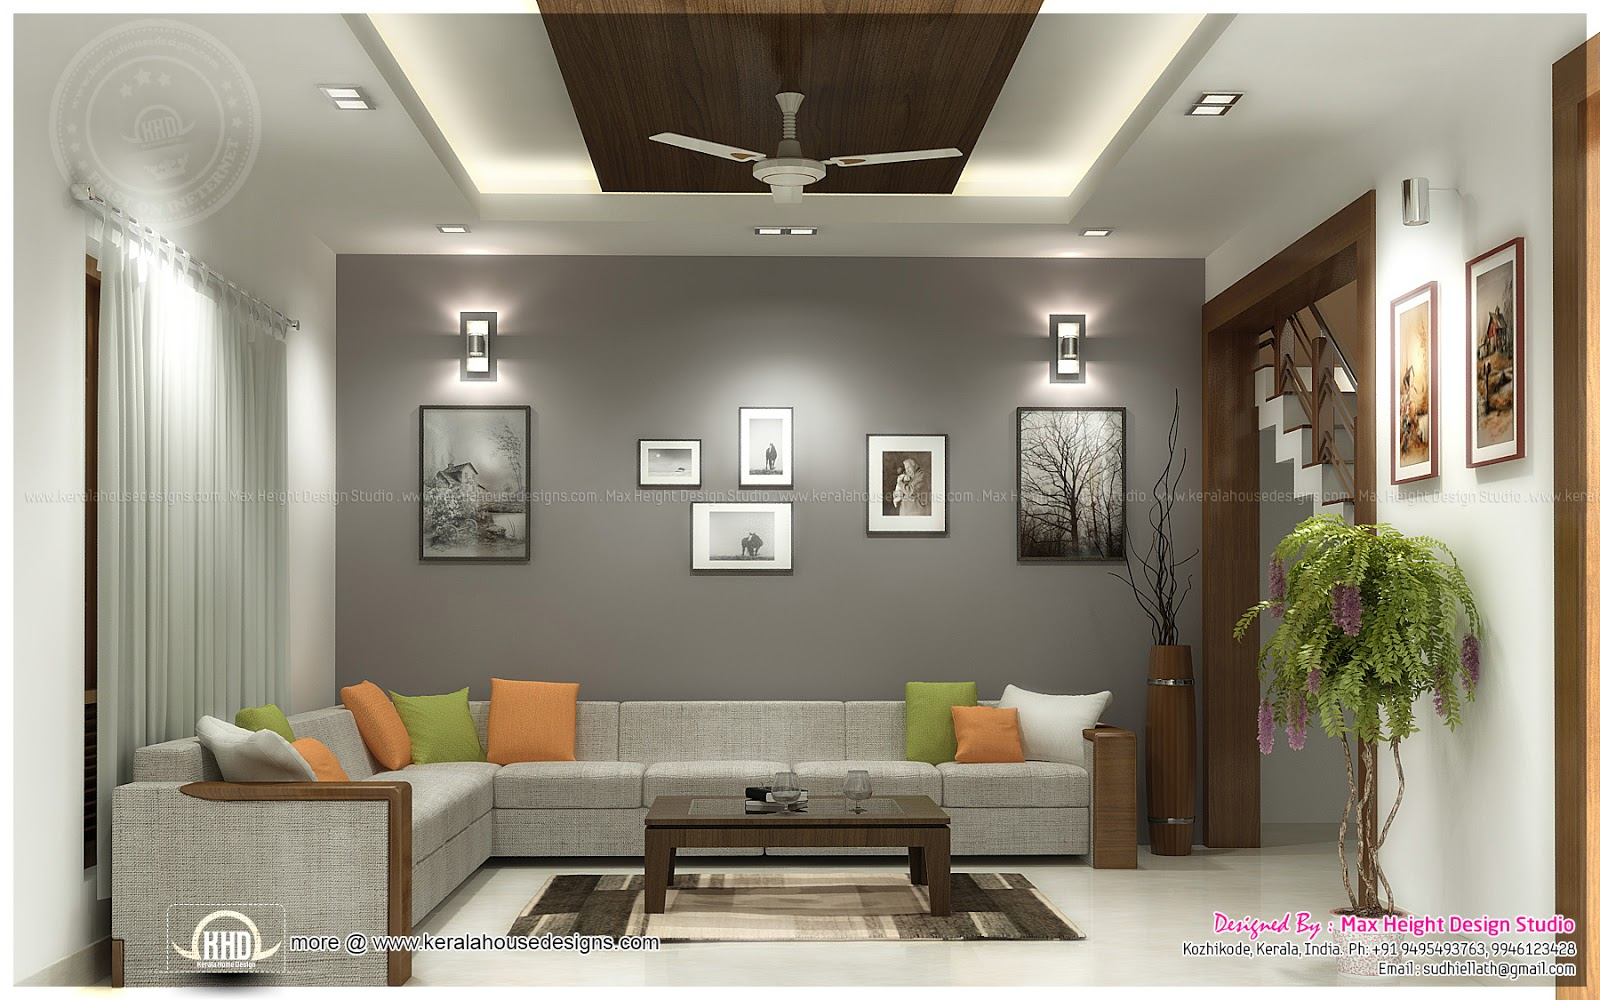 beautiful interior ideas for home home kerala plans. Black Bedroom Furniture Sets. Home Design Ideas